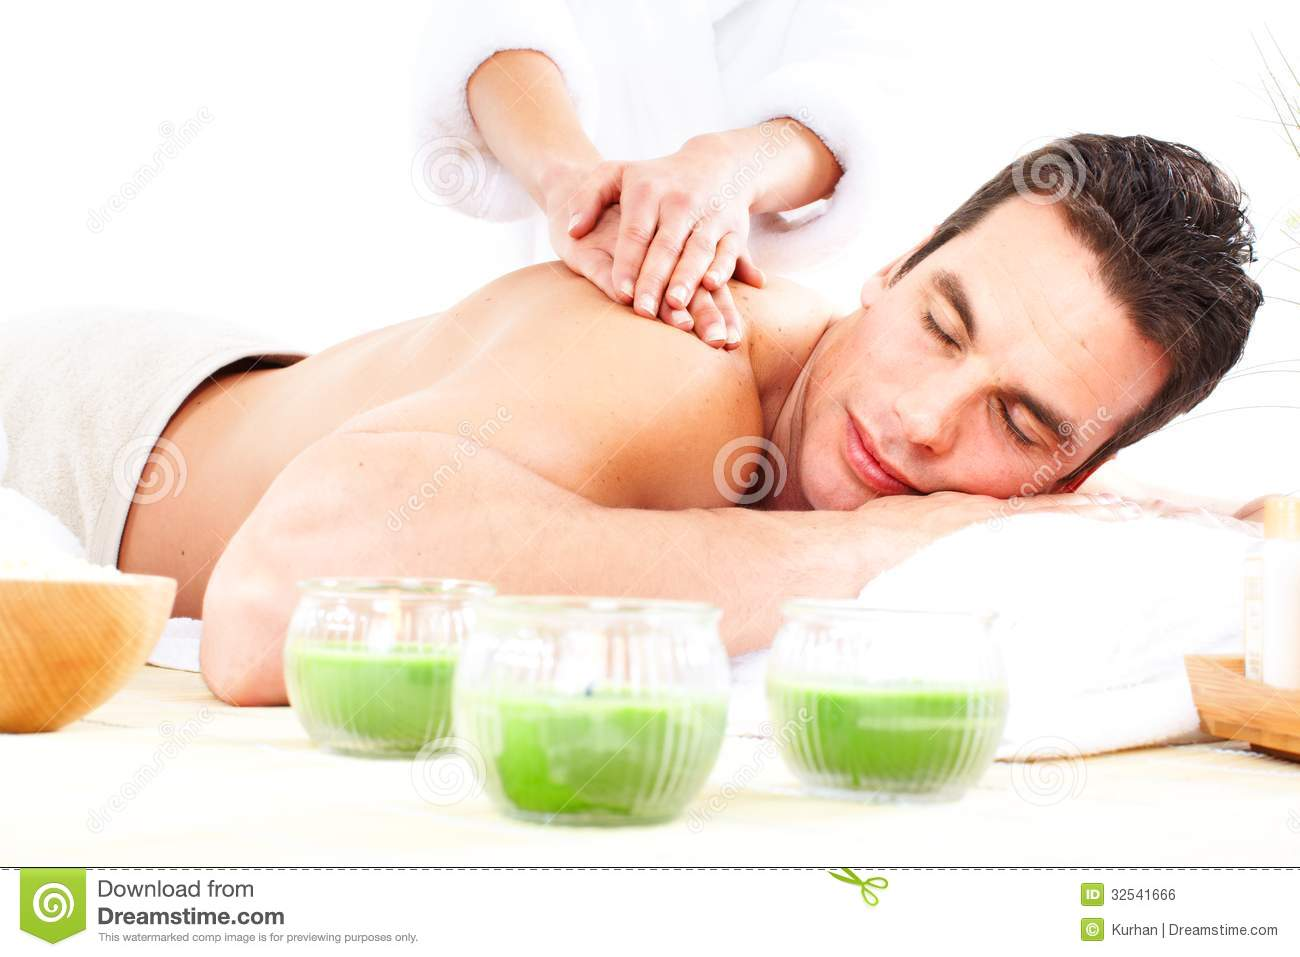 In Bodyr Relax Wellness Maximum Good Come Hands